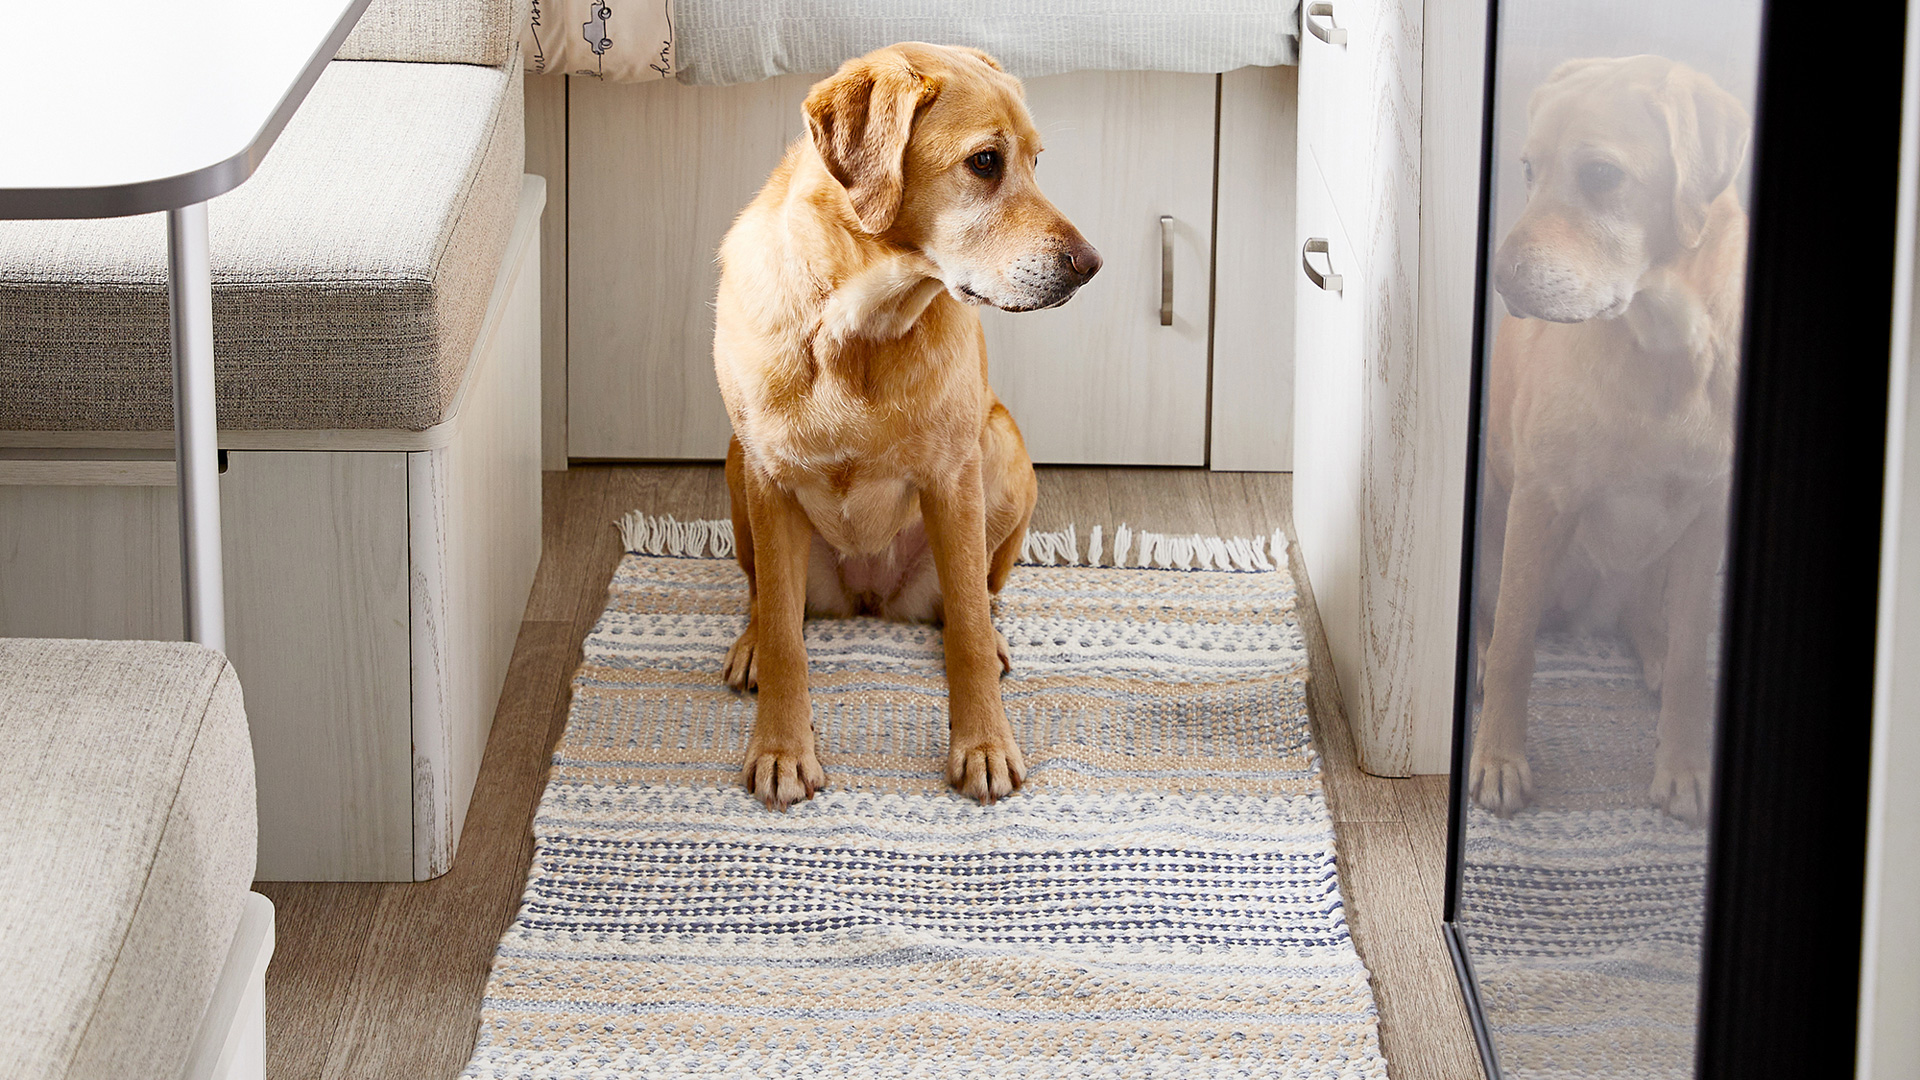 Airstream and Pottery Barn Pacifica Rug